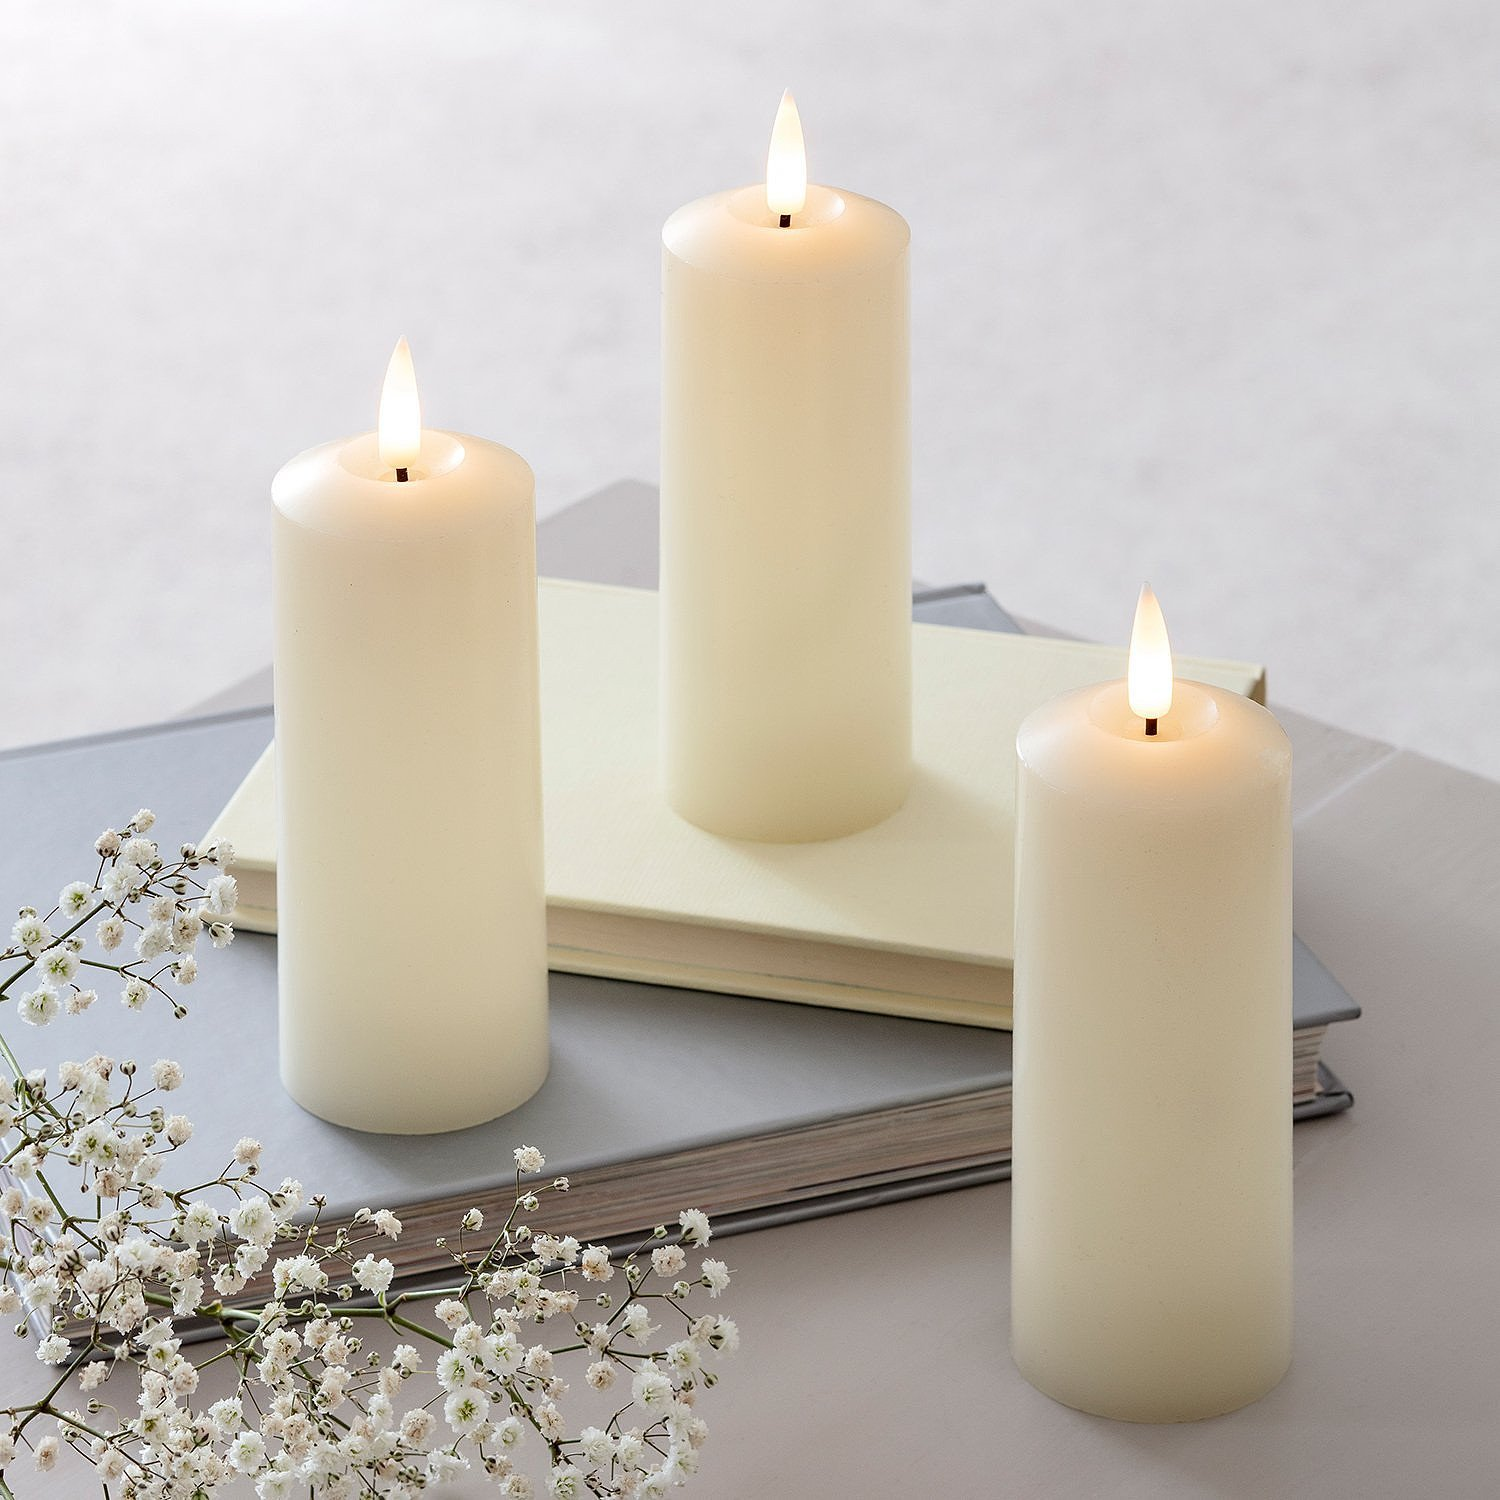 Mother's Day Gift Ideas - TruGlow® LED Slim Pillar Candle Trio: £19.99!